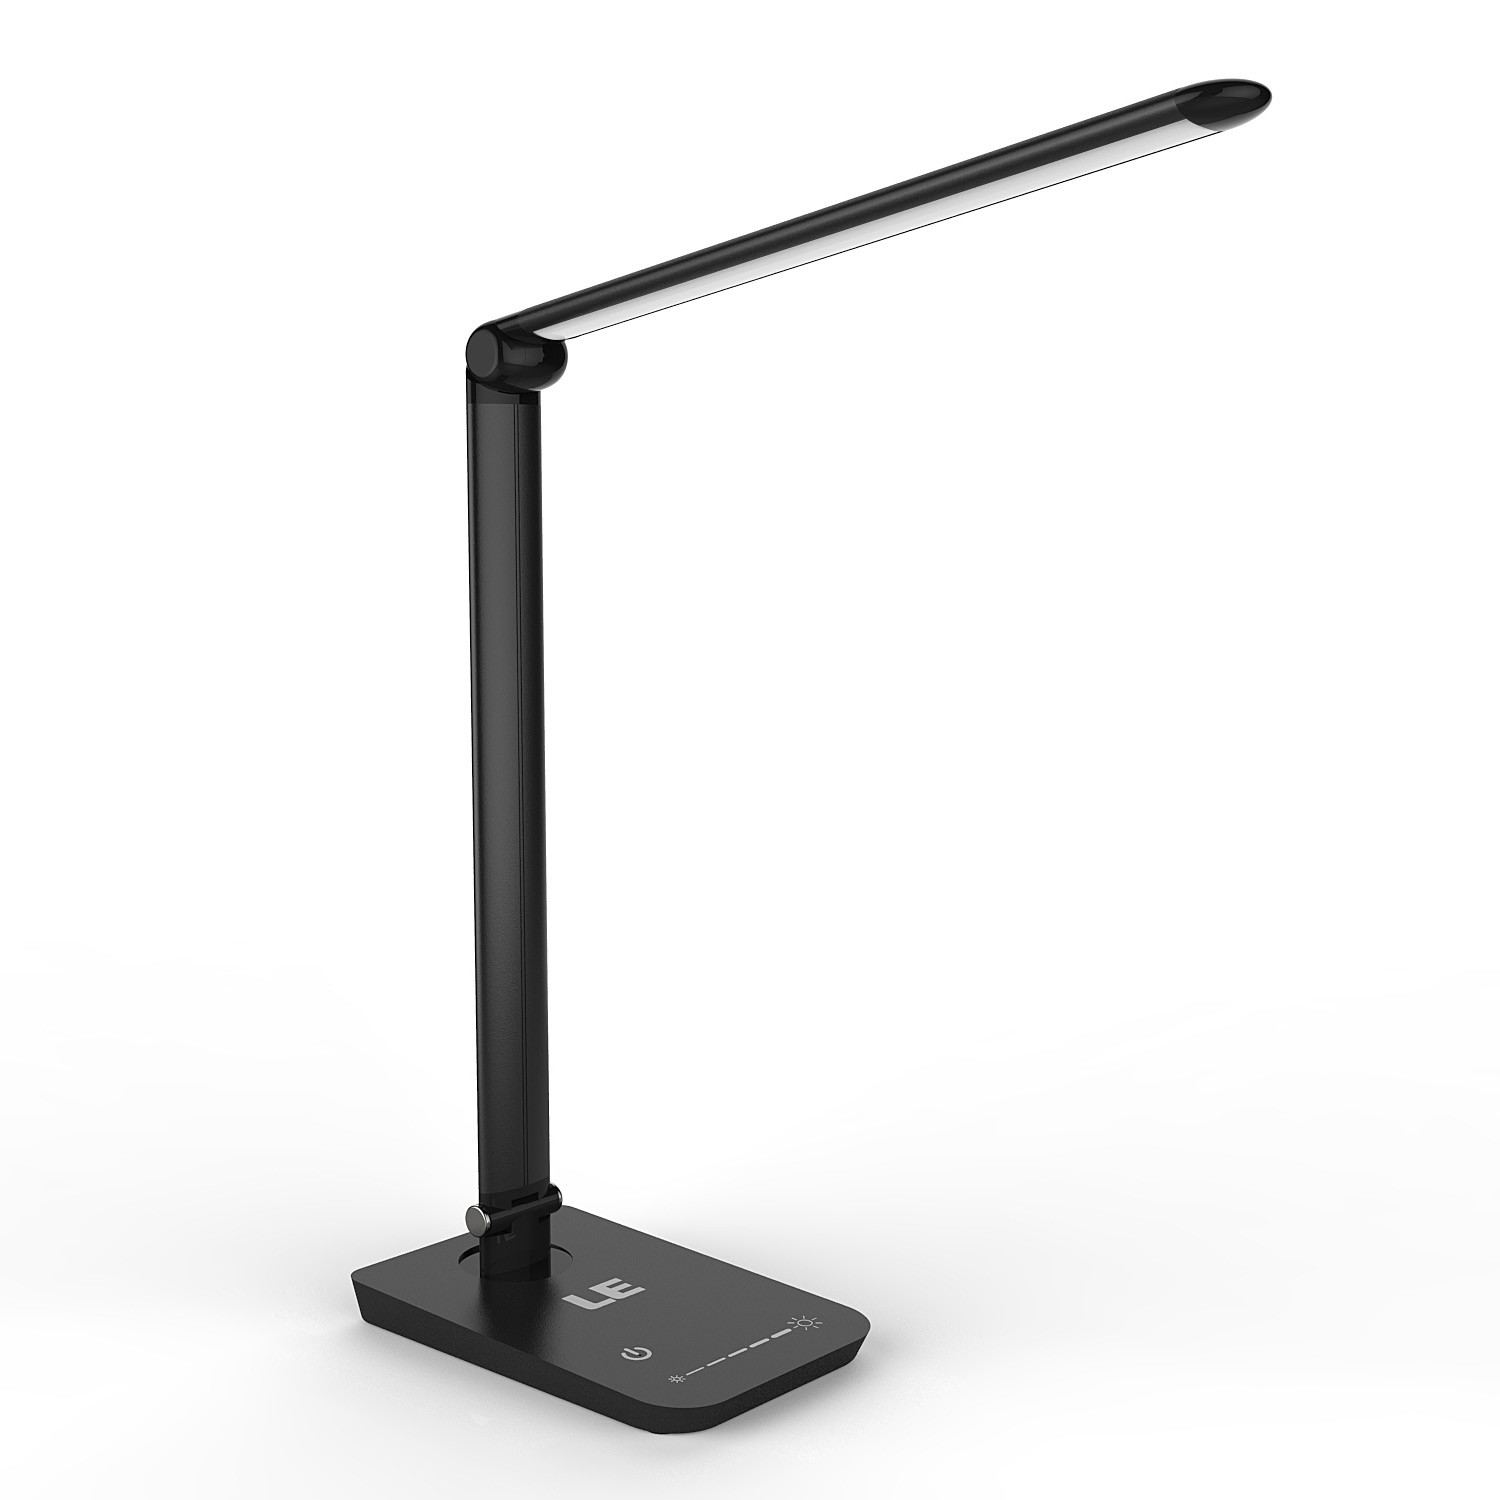 Best ideas about Desk Lamp Led . Save or Pin 8W Dimmable LED Desk Lamp 500lm Reading Light Now.